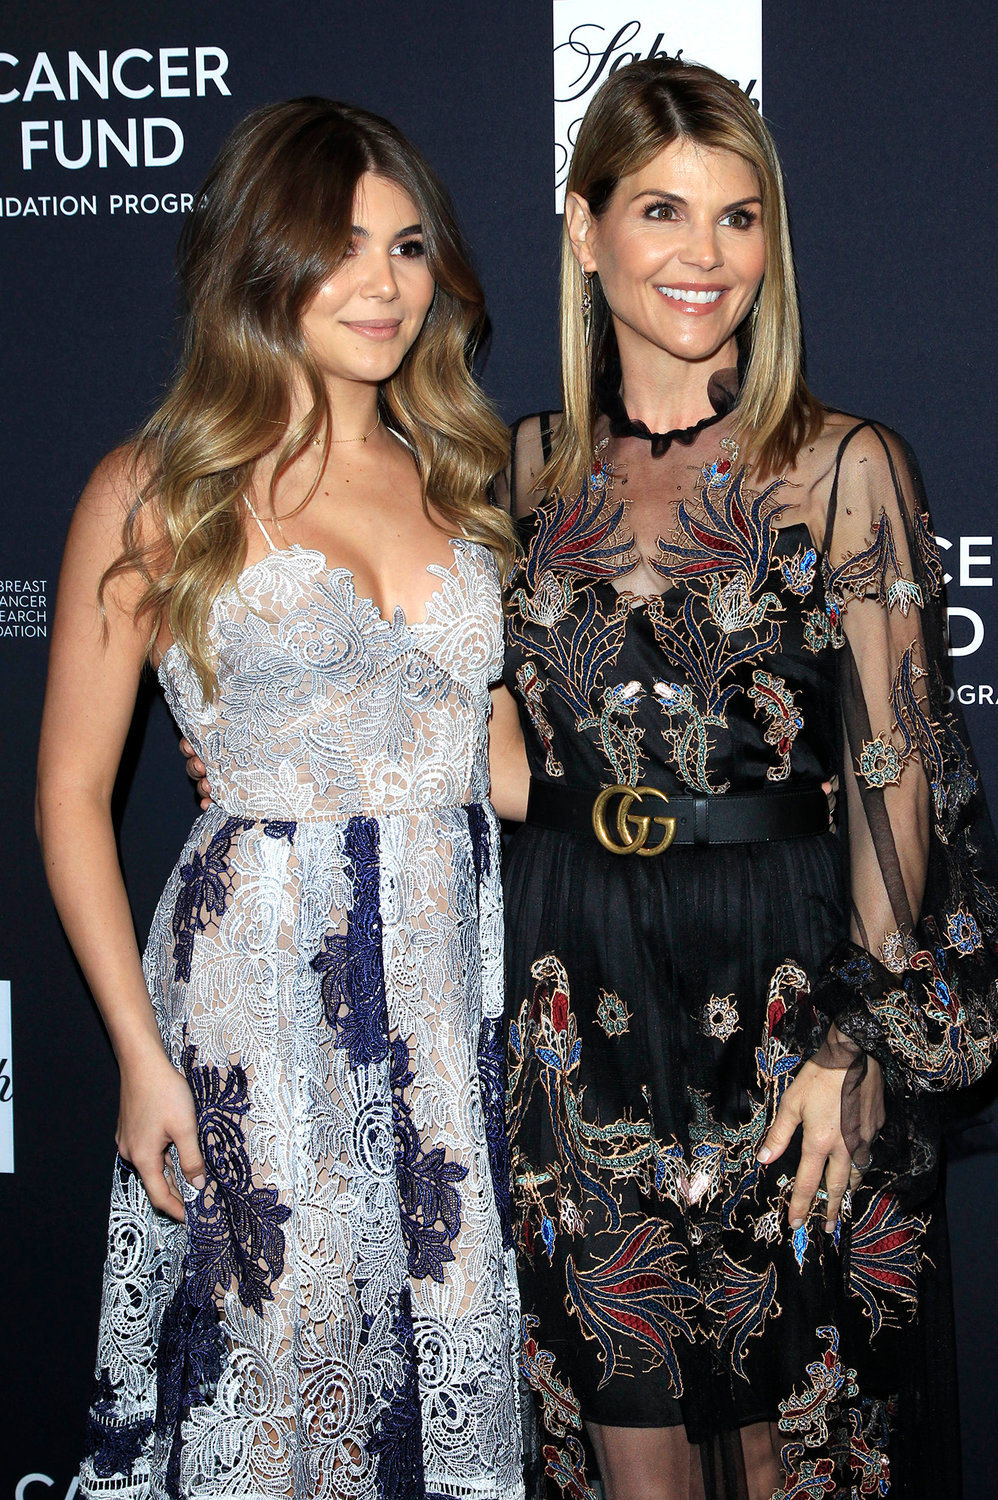 Lori Loughlin, right, with daughter Olivia Jade Giannulli.